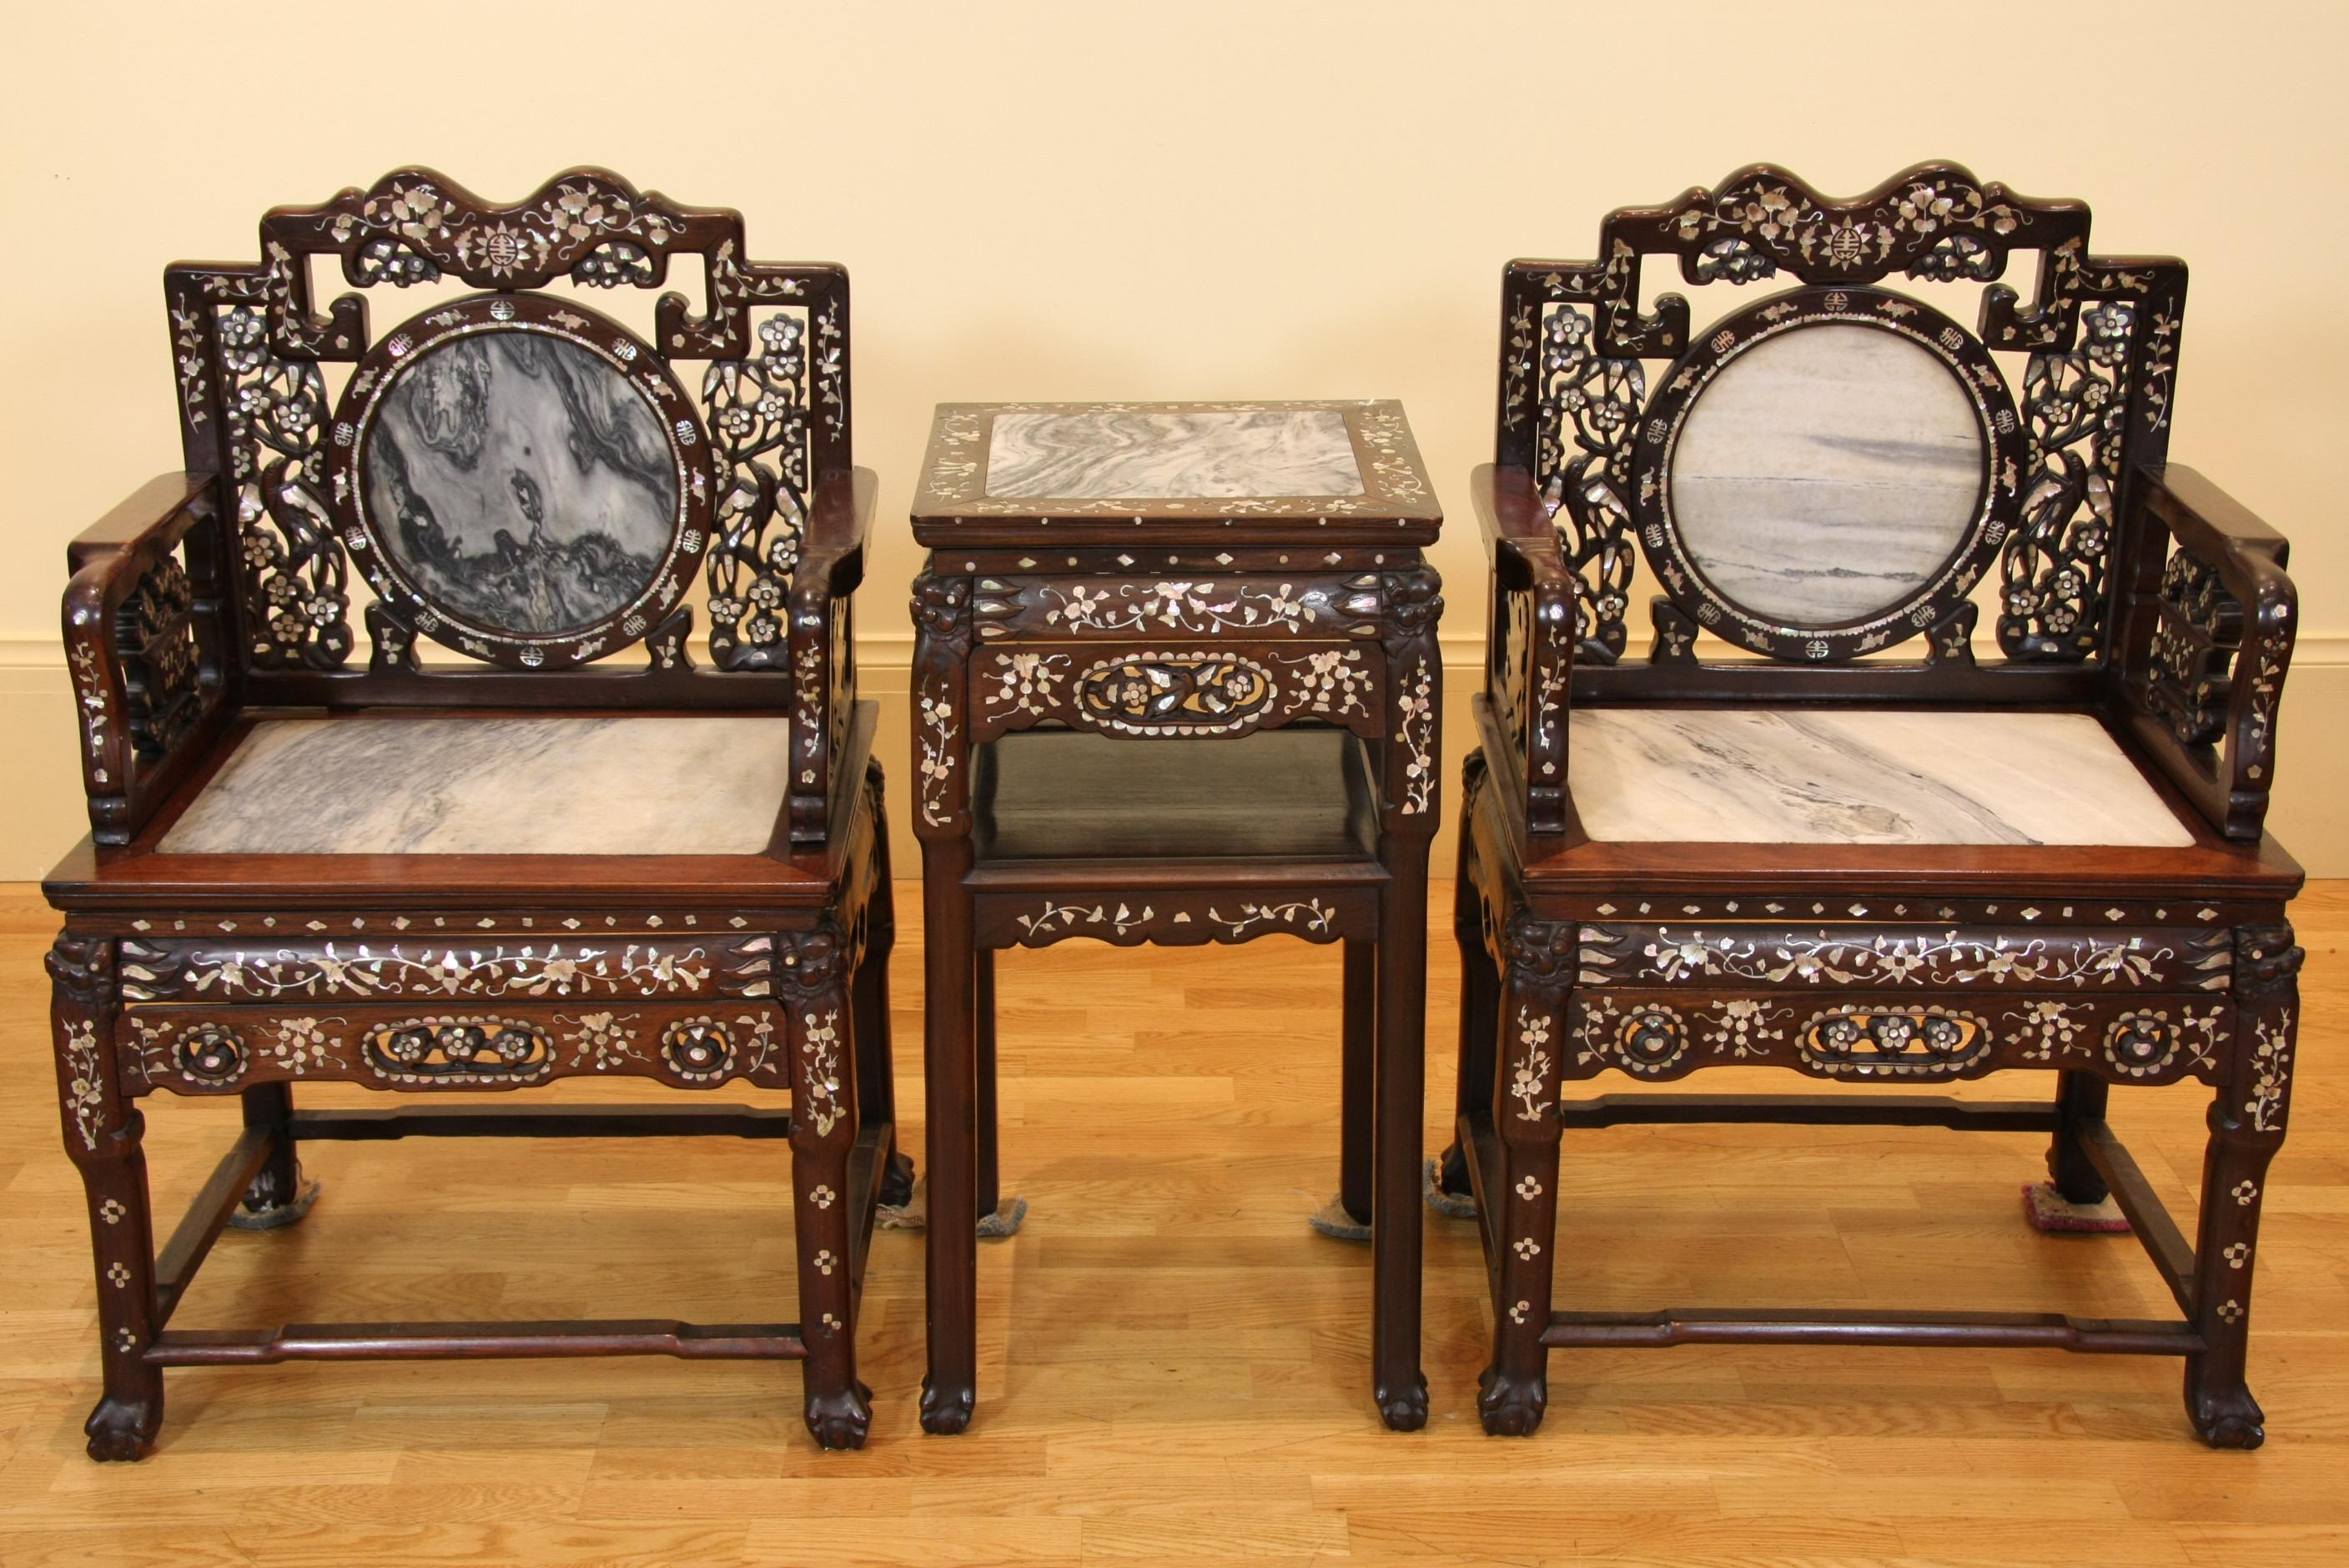 china sofas online ikea sofa table hack pair of rosewood chairs from the qing dynasty 1644 1912